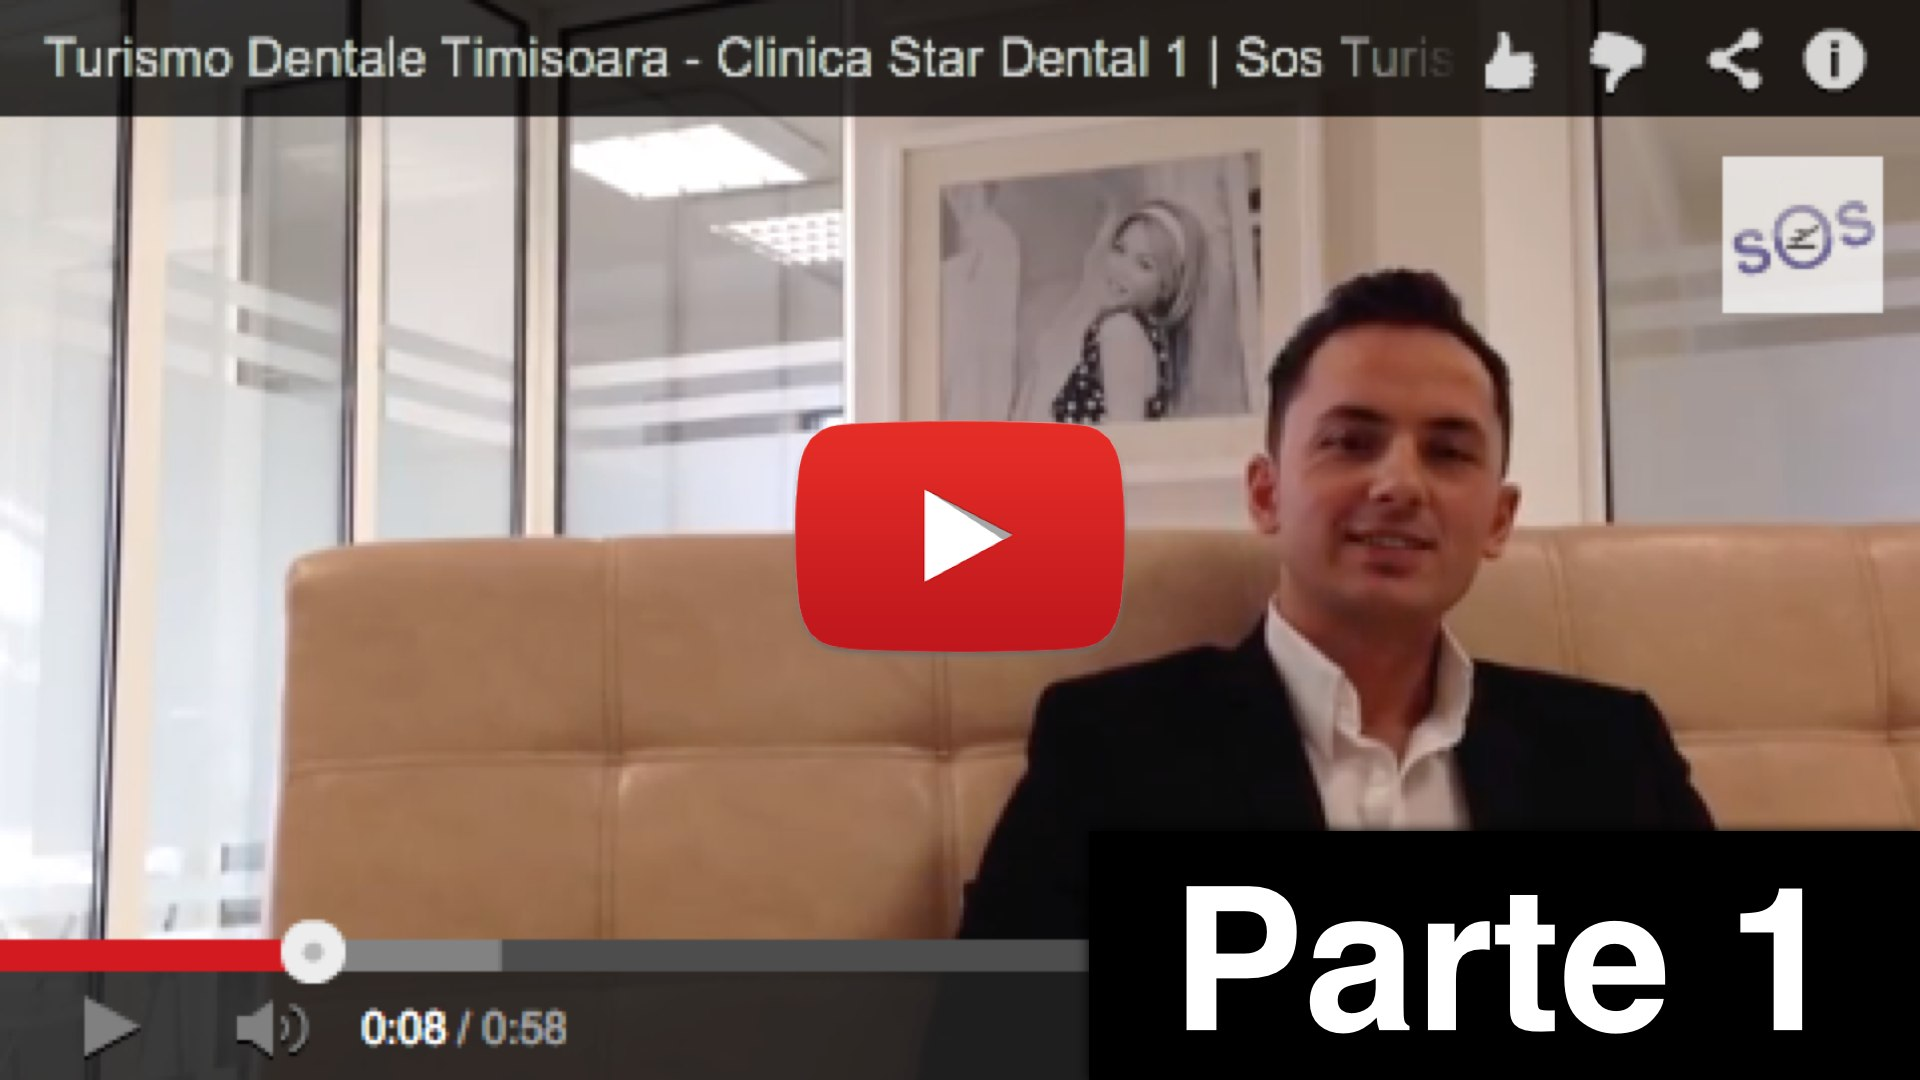 Turismo Dentale Timisoara - Star Dental 1